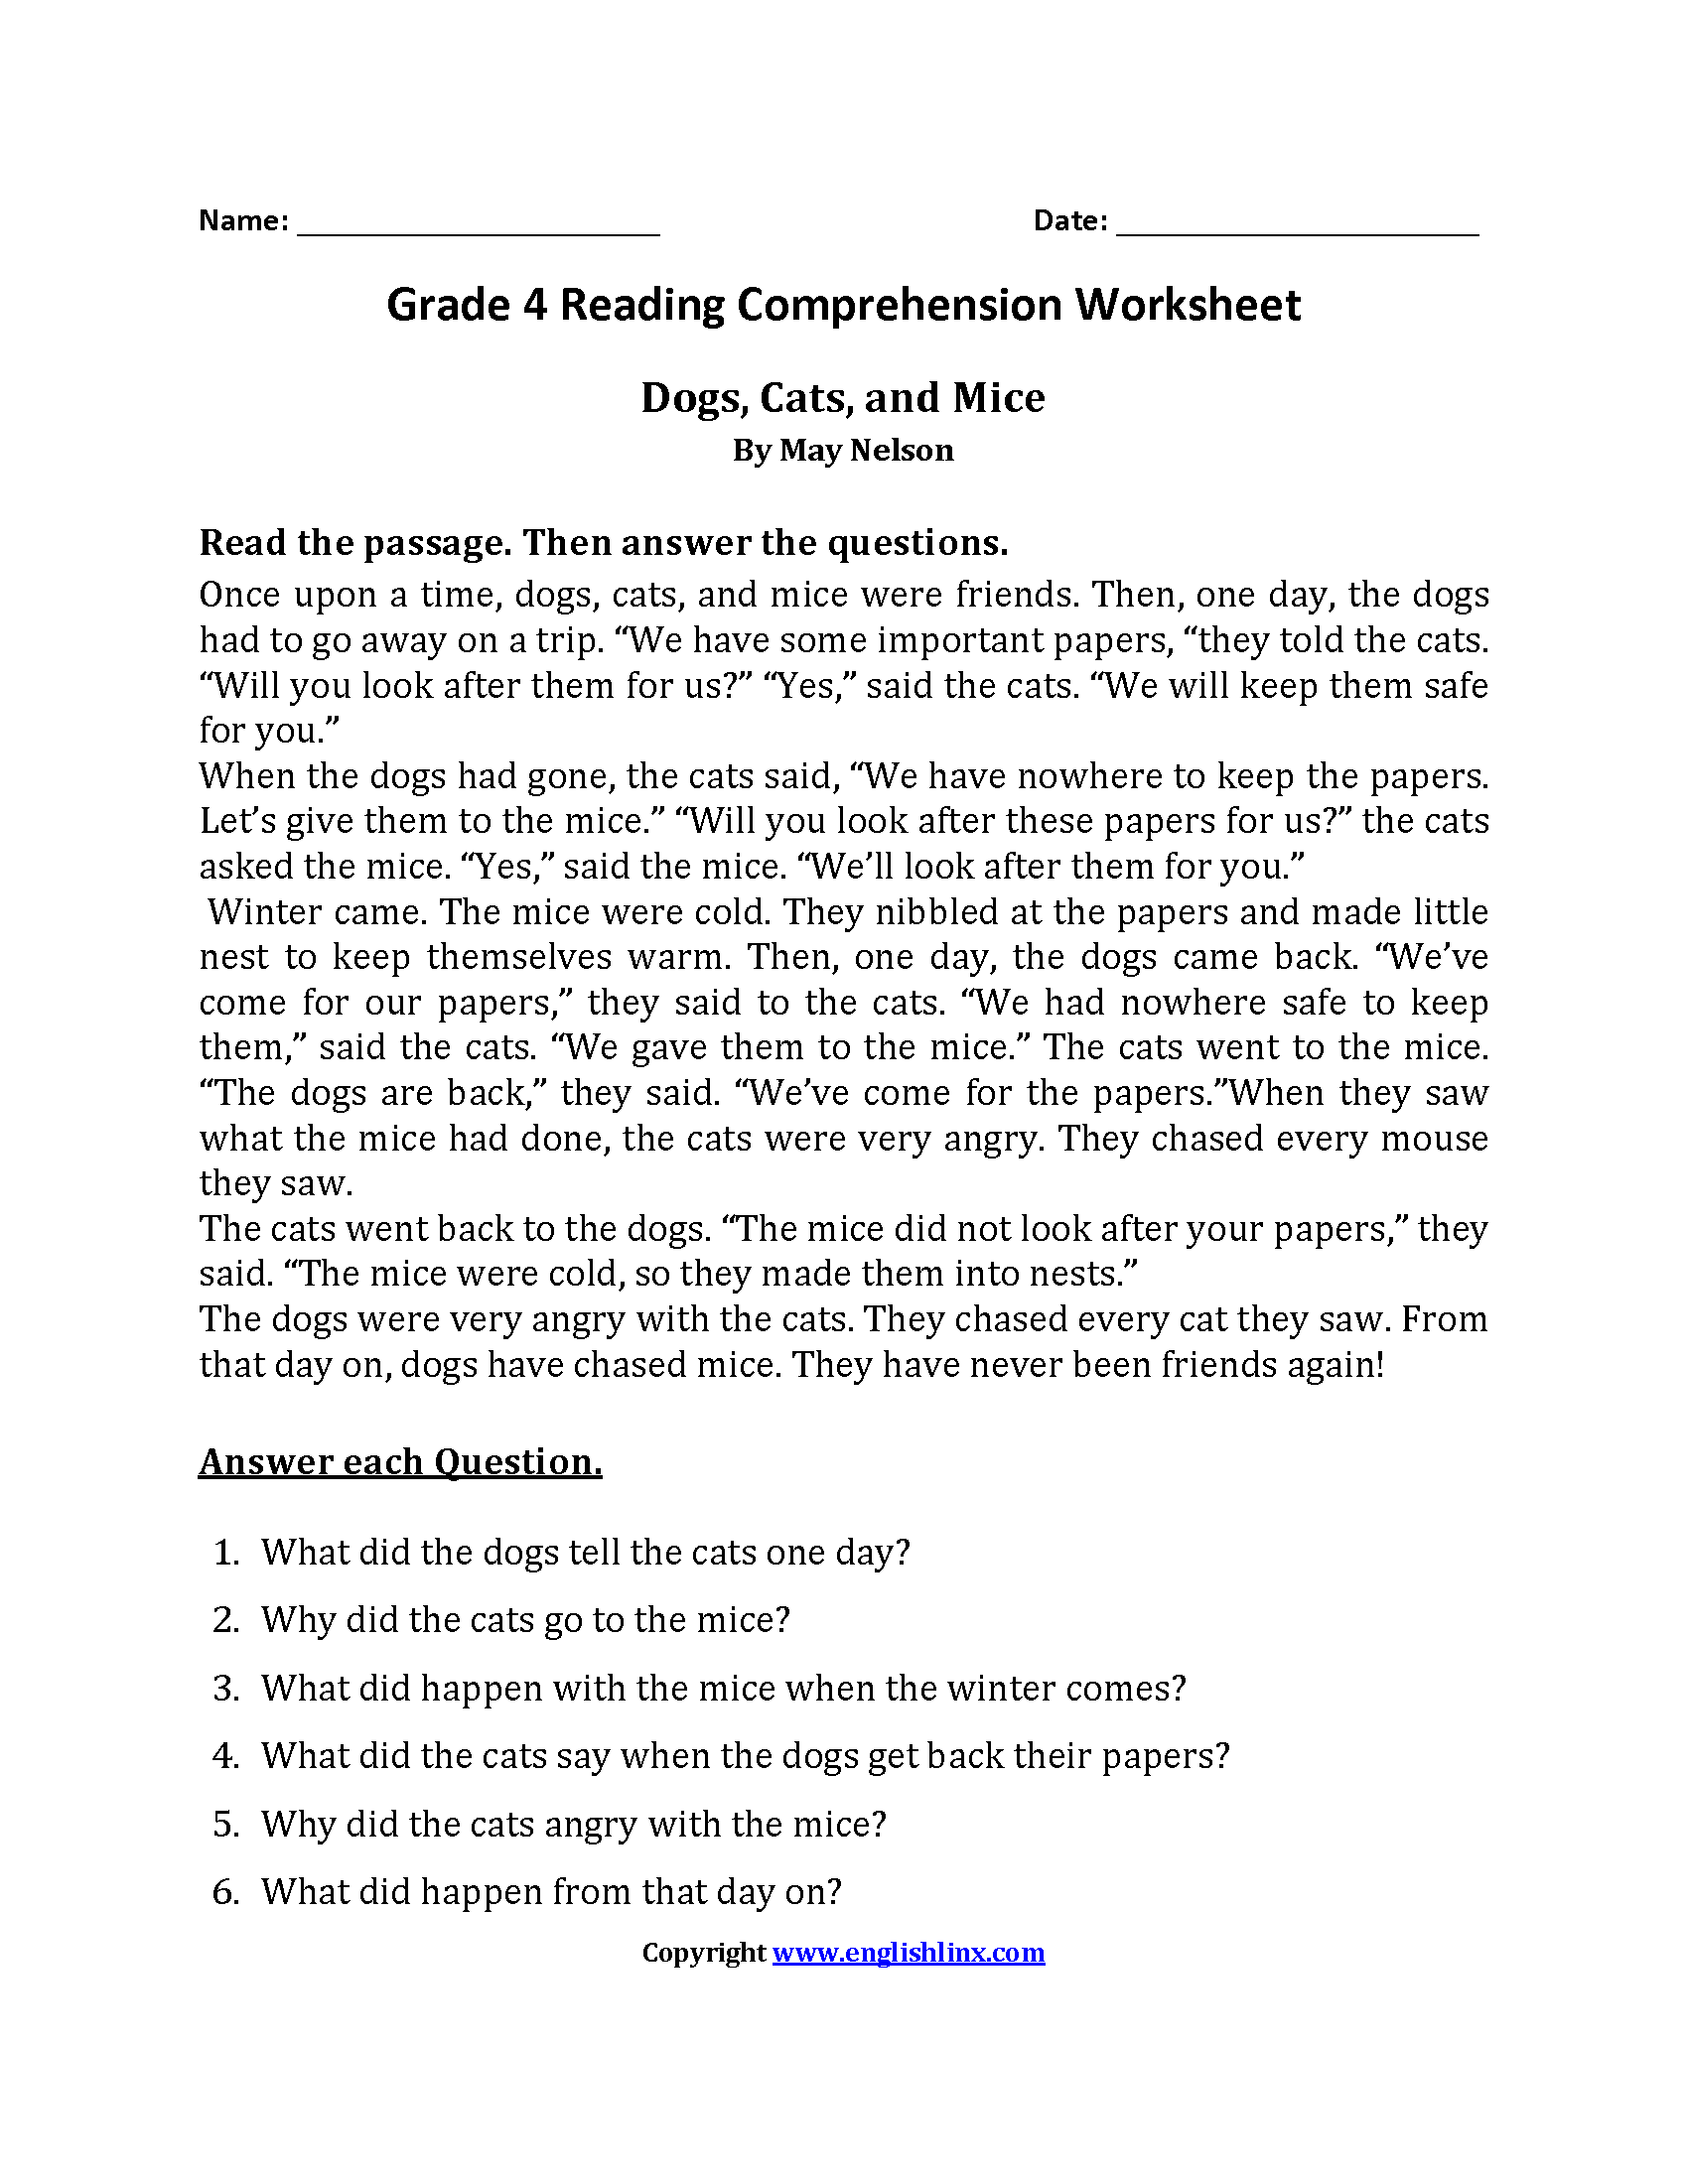 Dogs Cats And Mice Fourth Grade Reading Worksheets